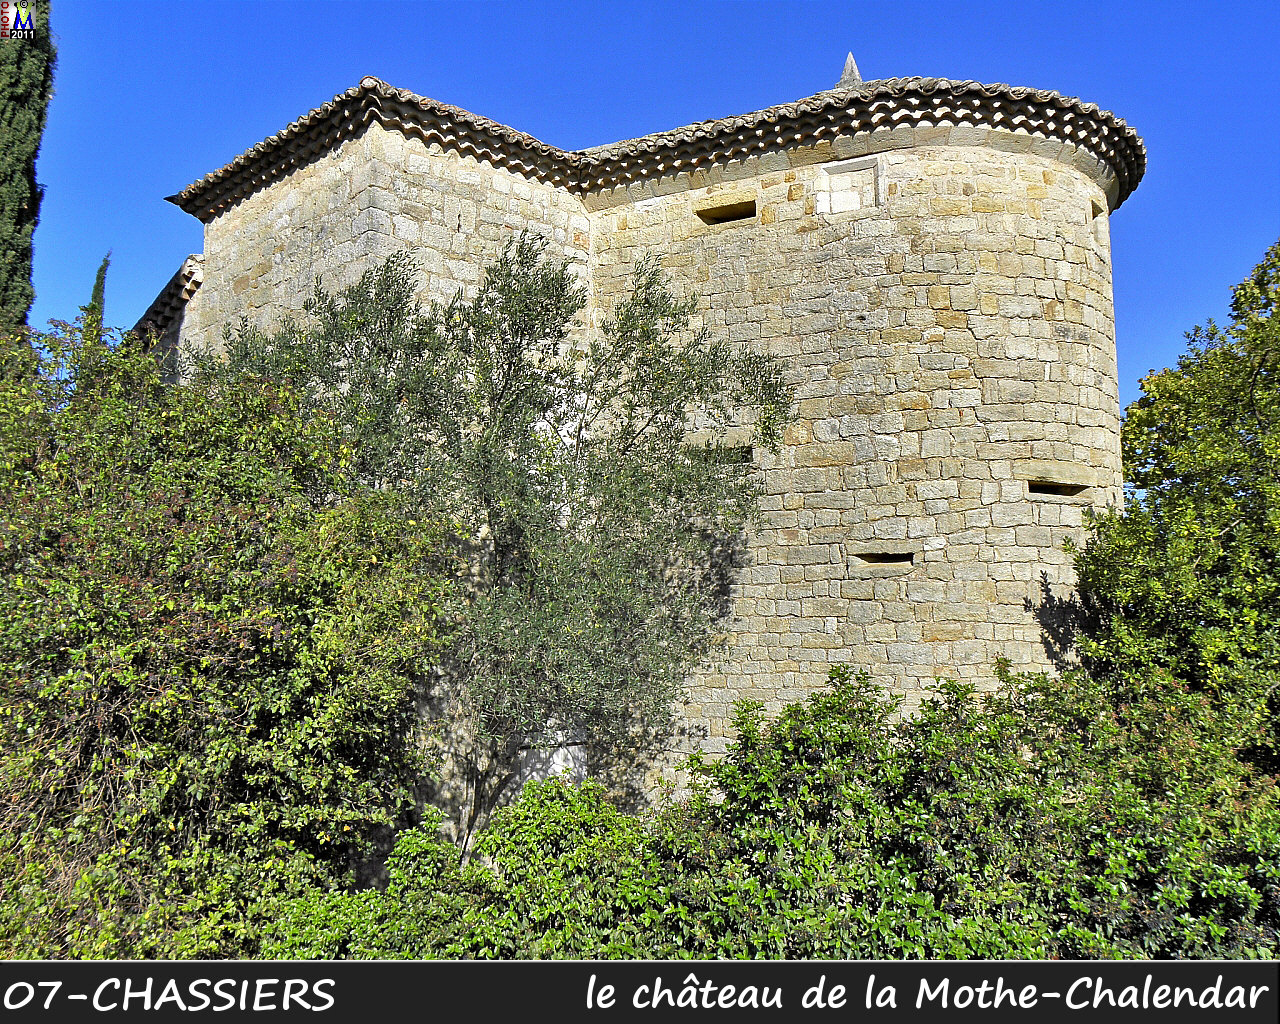 07CHASSIERS_chateauMC_102.jpg